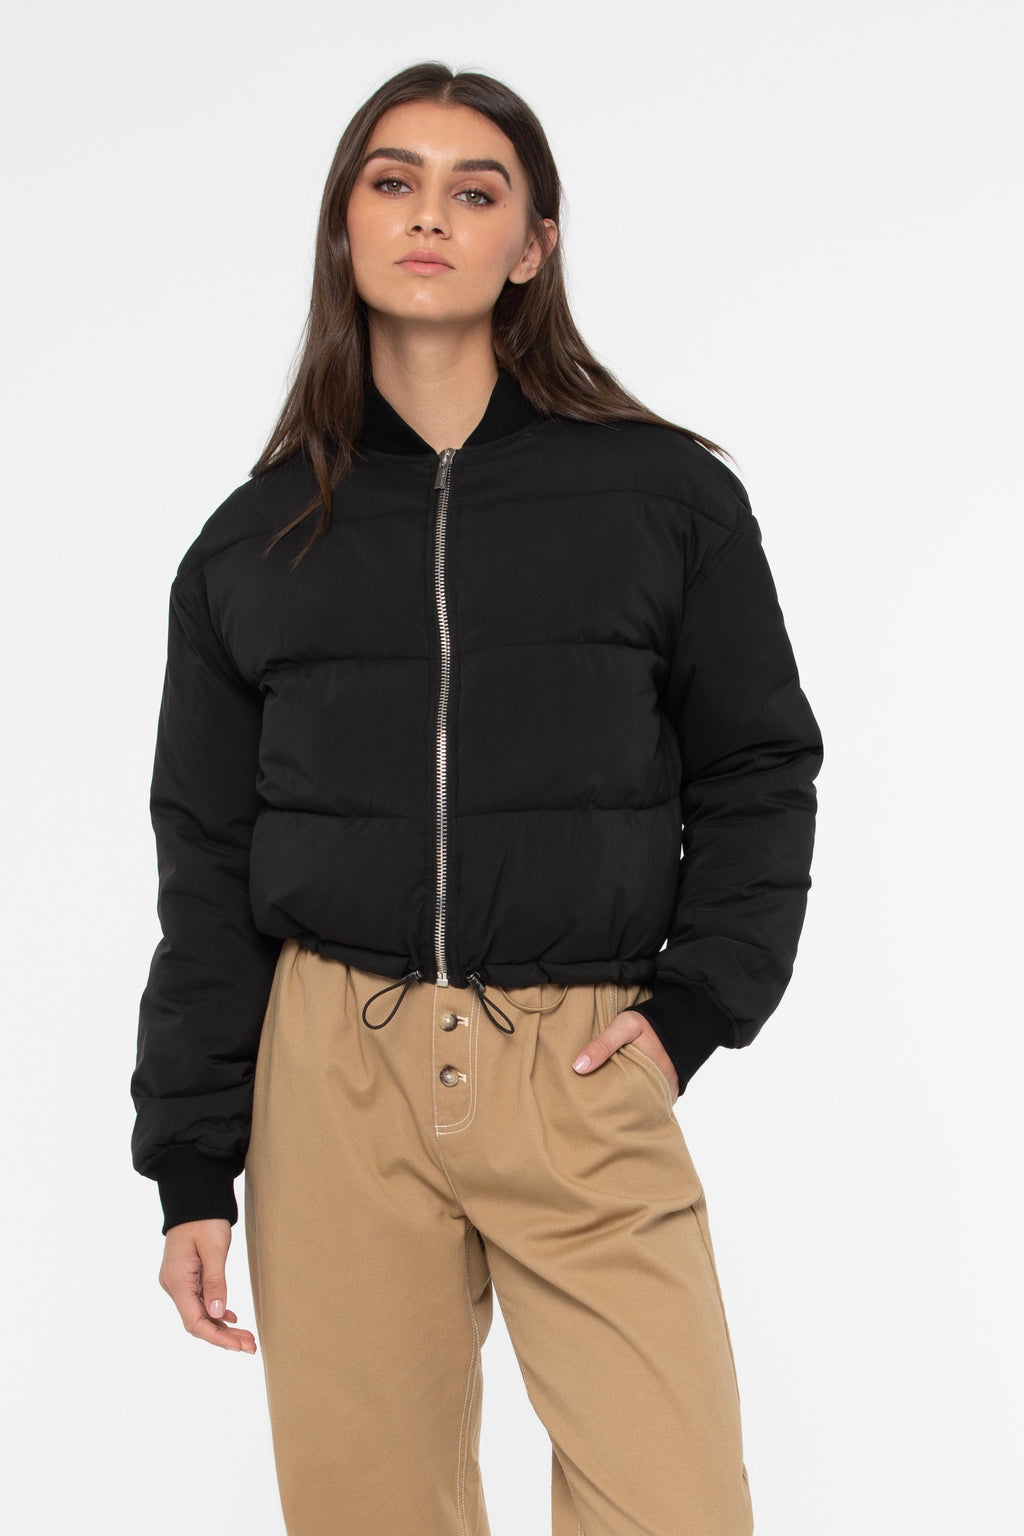 Matt & Nat KENYA Vegan Bomber Jacket